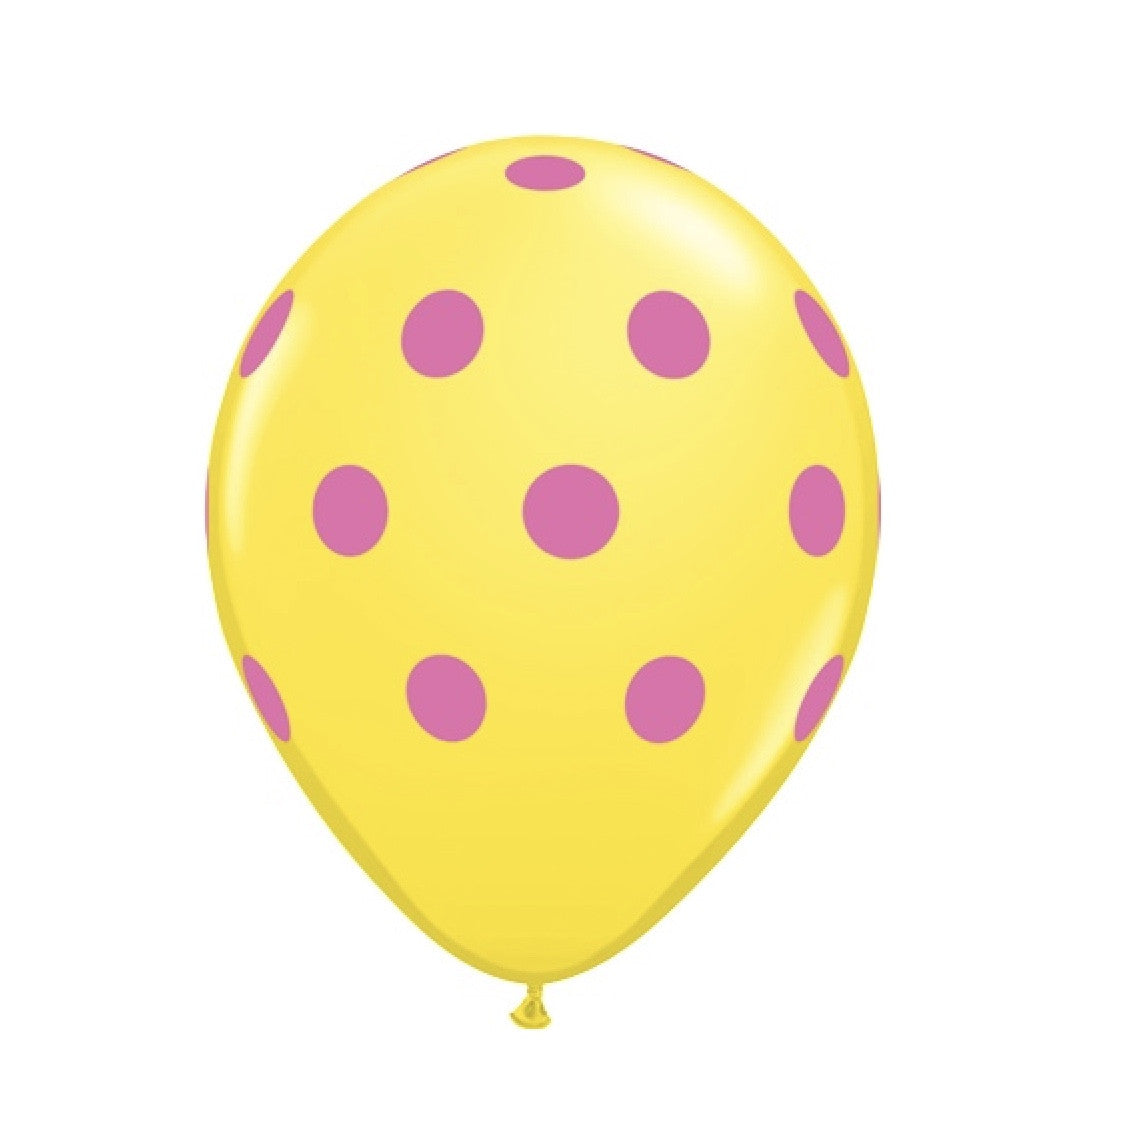 Big Polka Dots Colorful Balloons - Yellow & Hot Pink, Surprize Enterprize, Putti Fine Furnishings